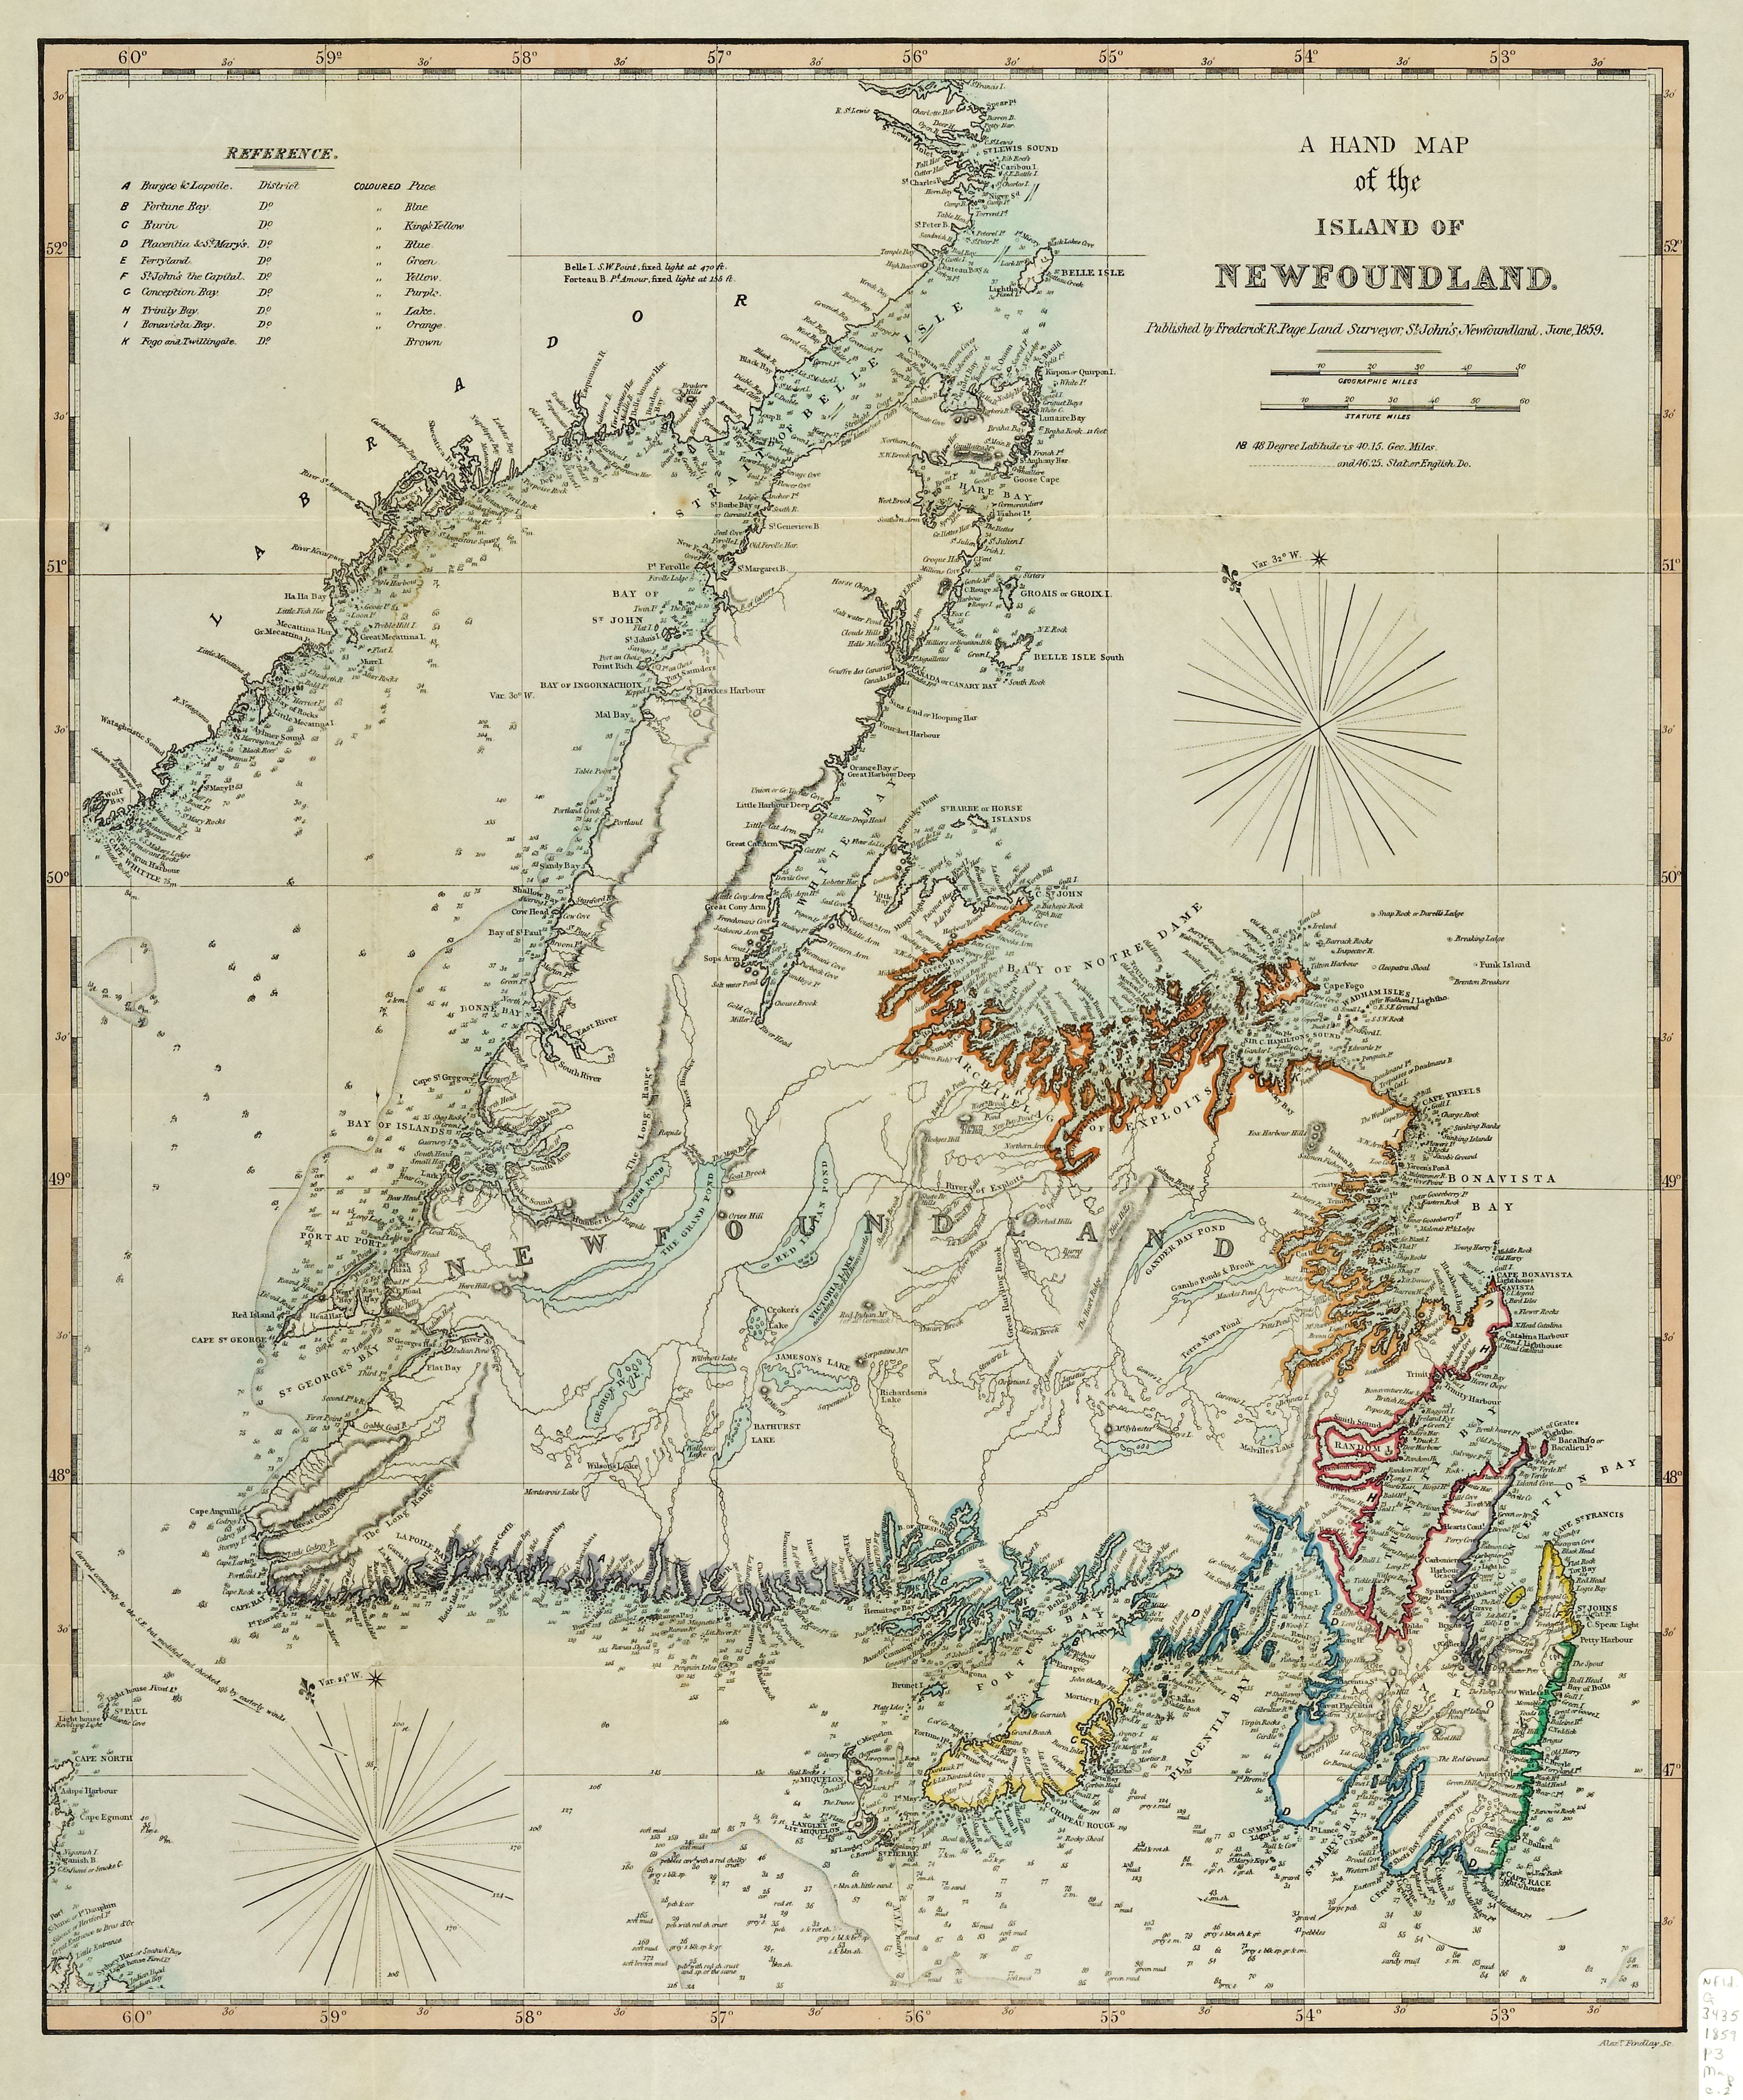 Http://collections.mun.ca/maps/G3435